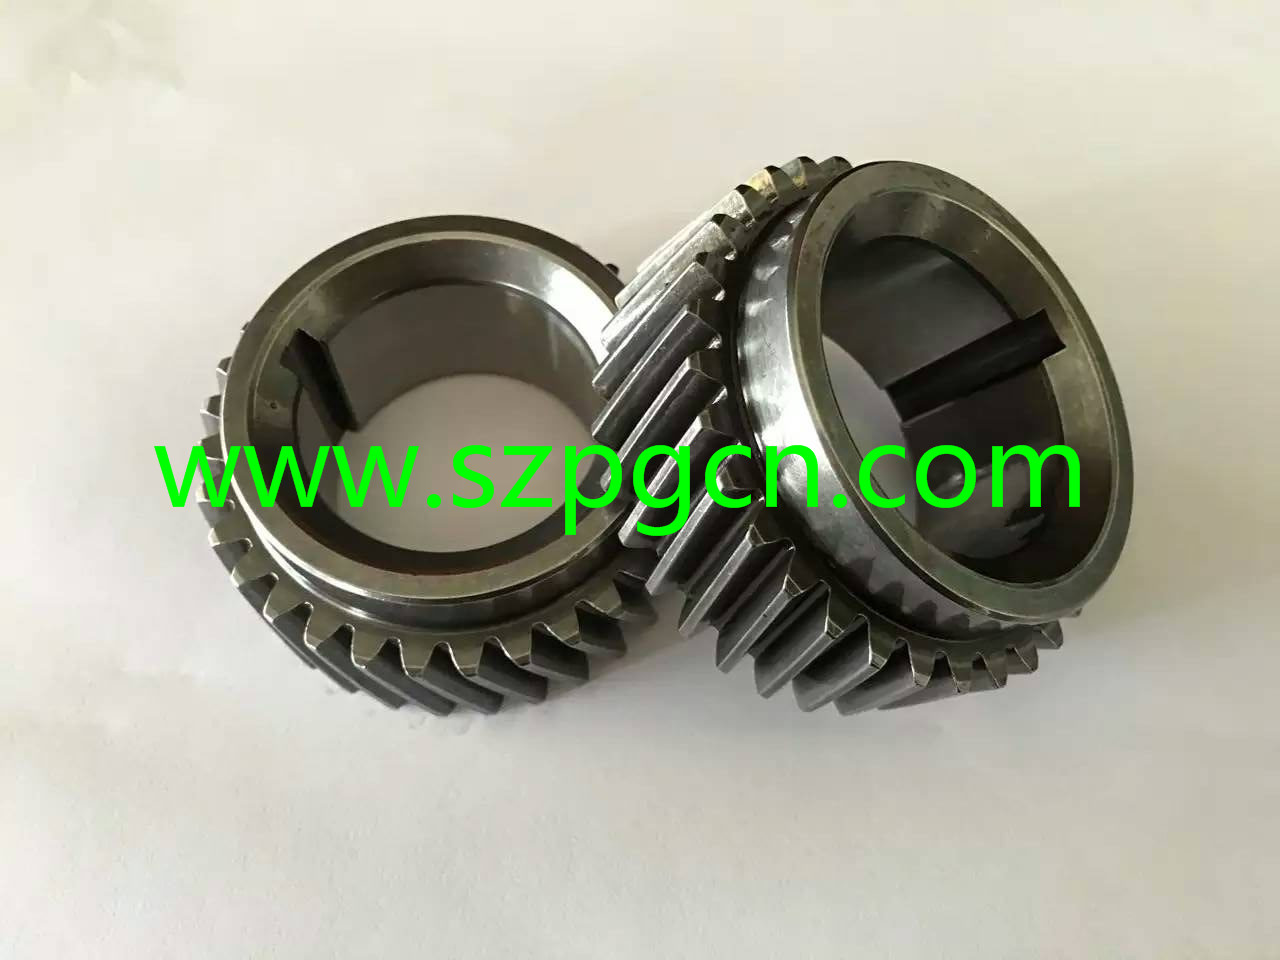 Forklift Engine Spare Parts Crankshaft Gear 129900-21200 For 4TNV94 4TNV98 4TNE94 4TNE98 Engine